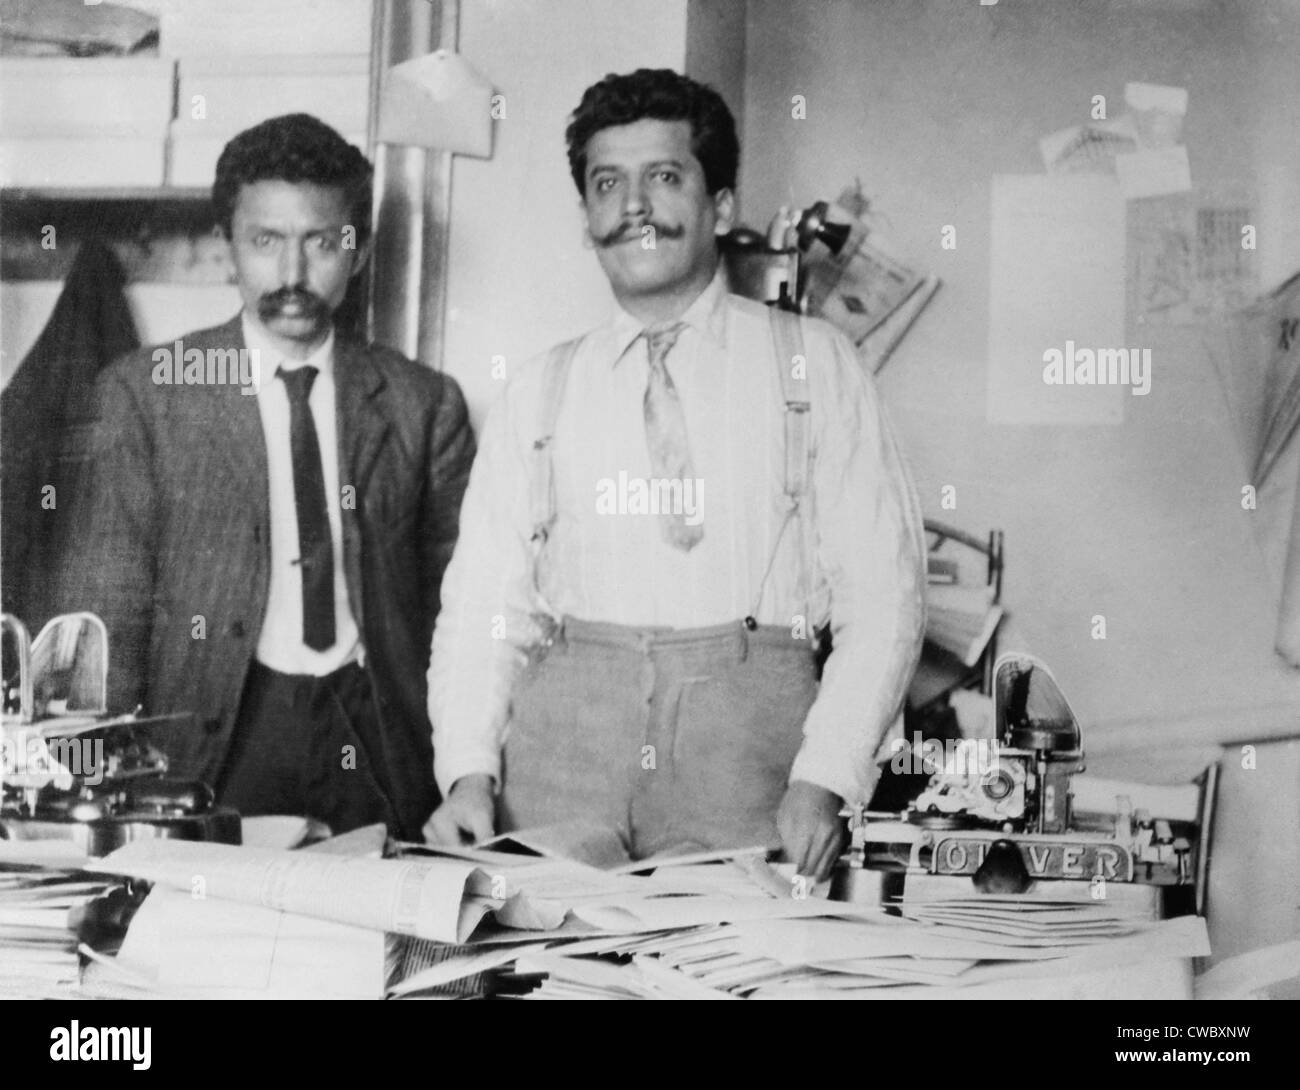 Librado Rivera (1864-1932) and Enrique Flores Magon (1877-1954), Mexican anarchists associated with Emiliano Zapata, - Stock Image